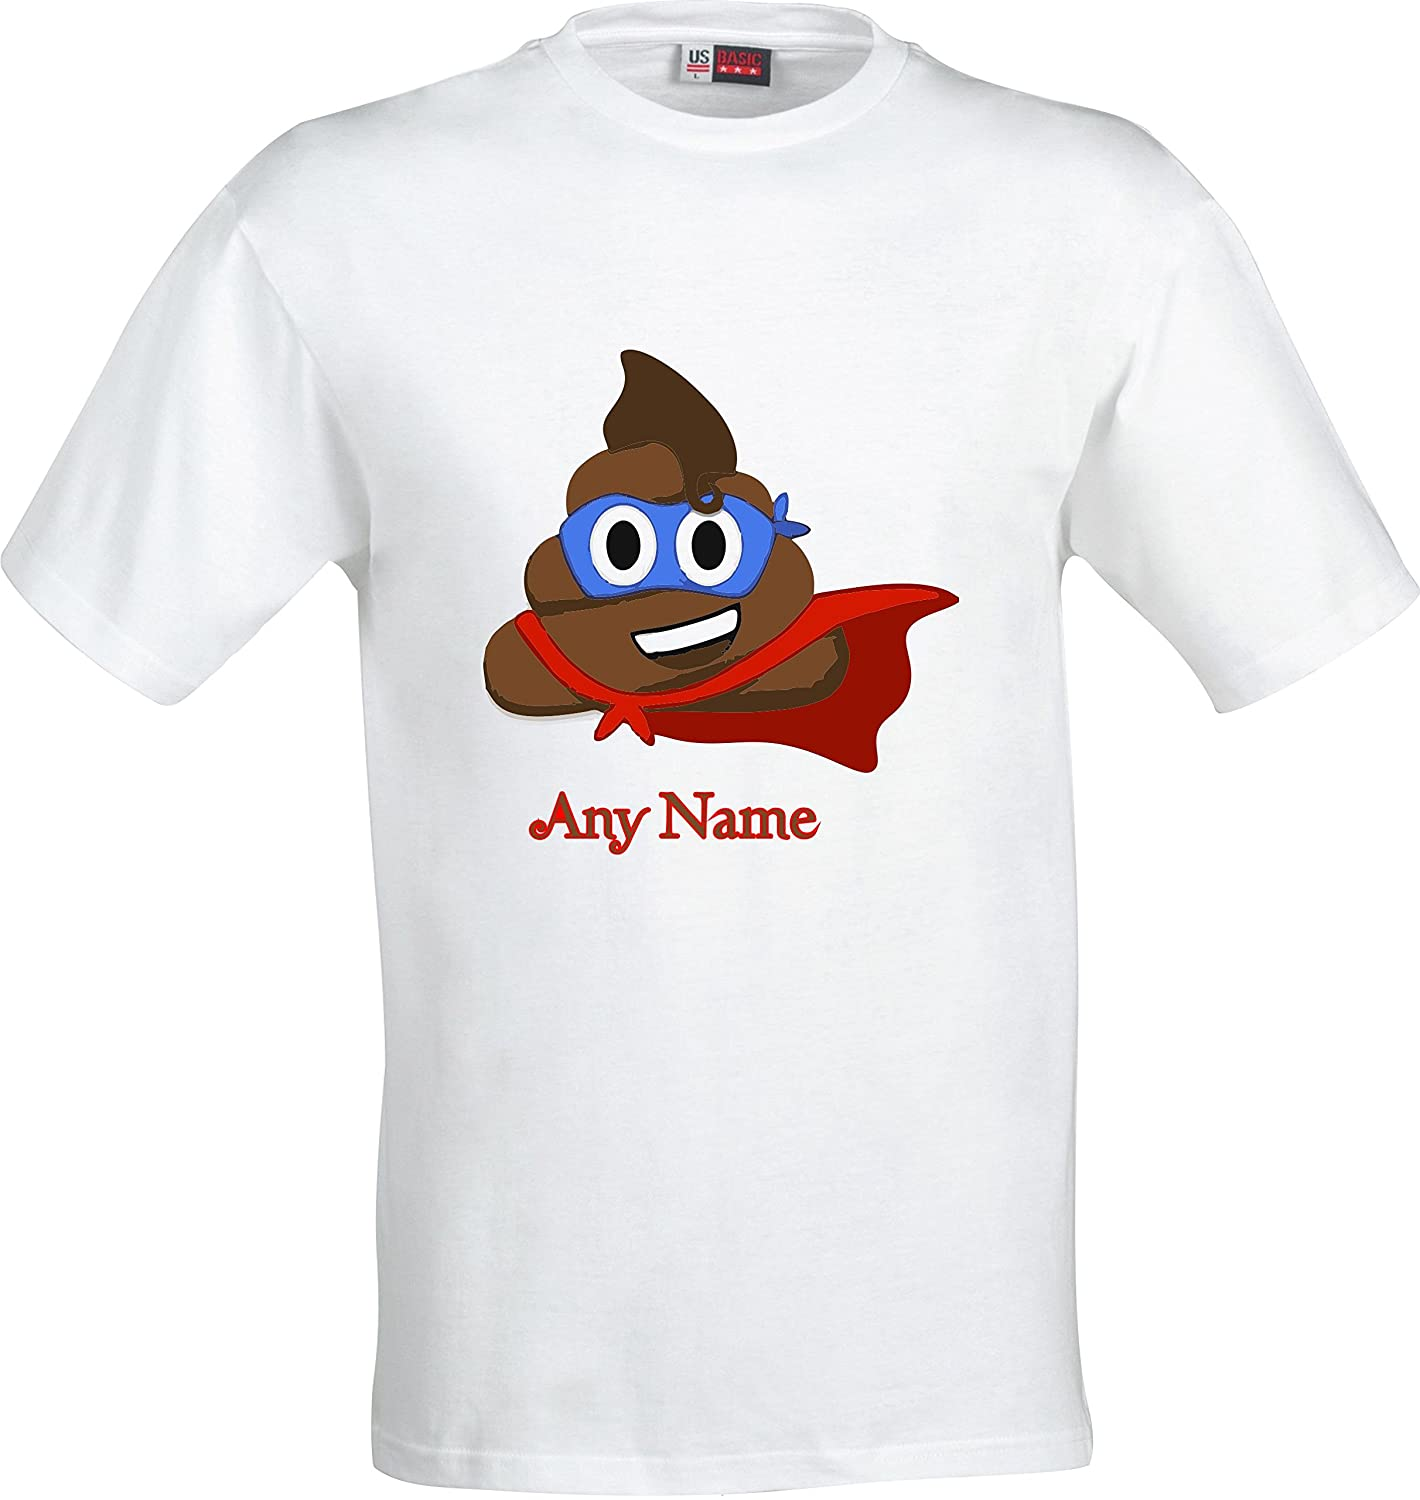 merry christmas poo emoji All-over youth sublimation T-shirt tee shirt top